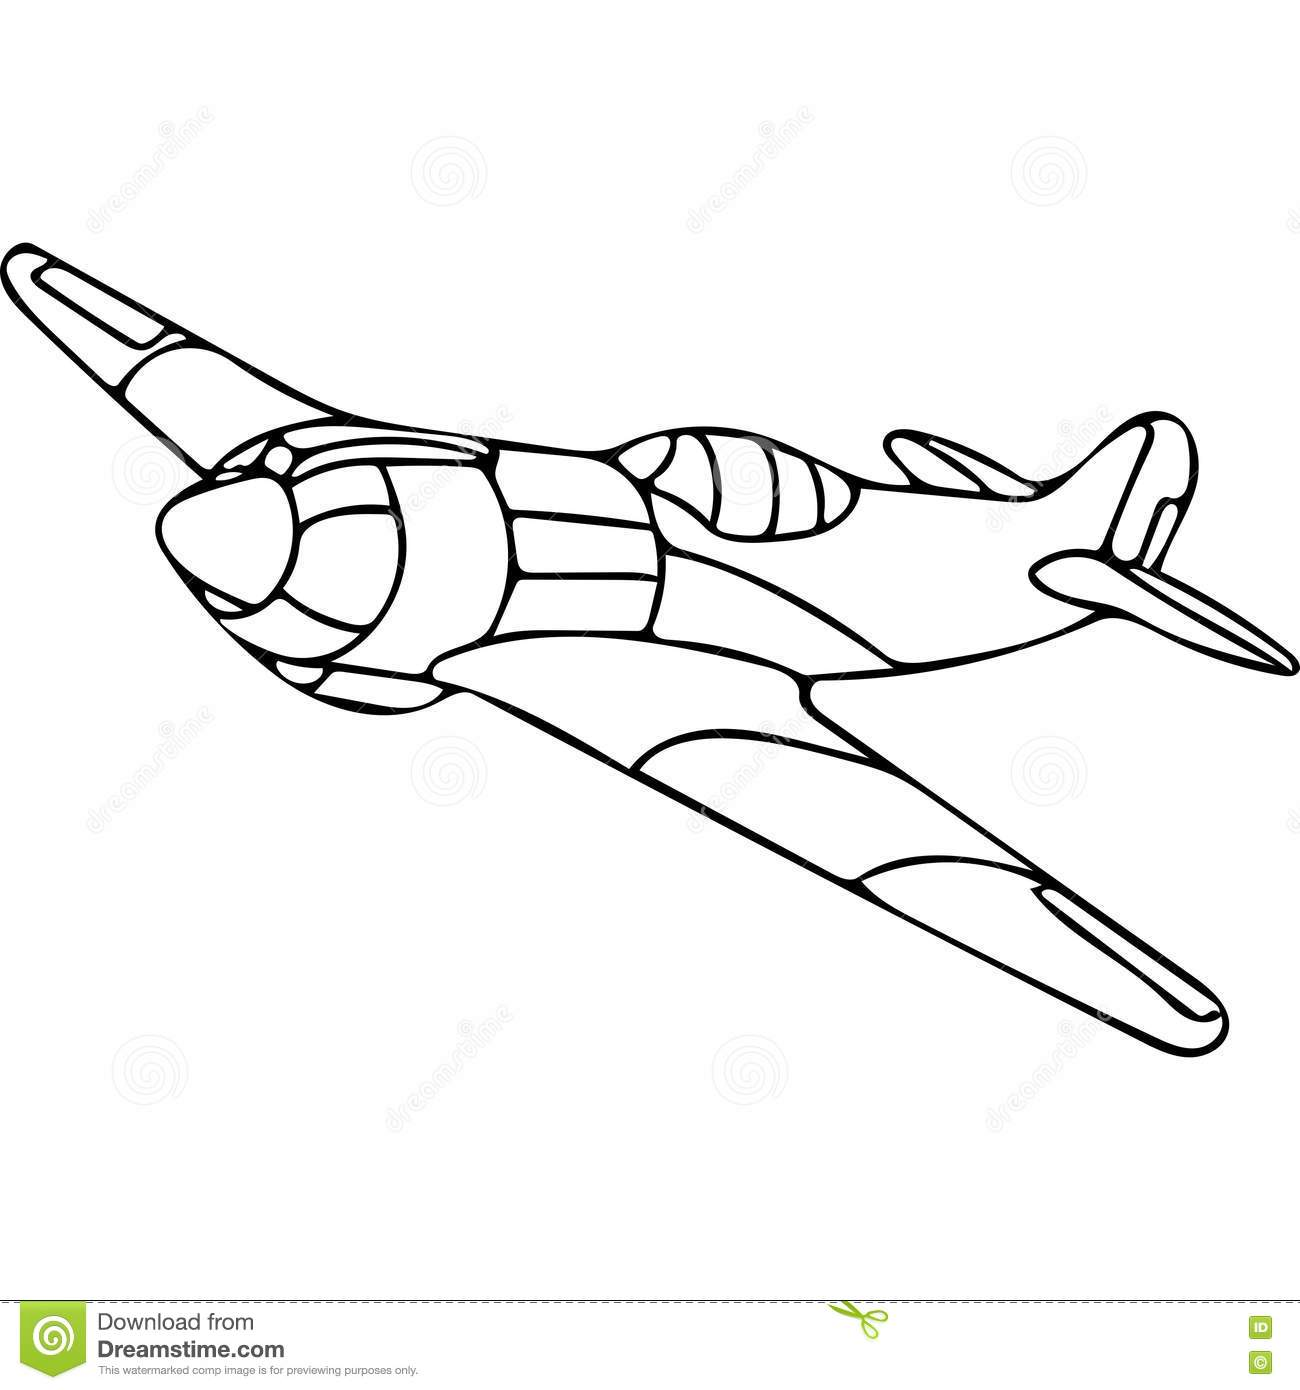 Plane coloring pages stock illustration. Illustration of needs ...